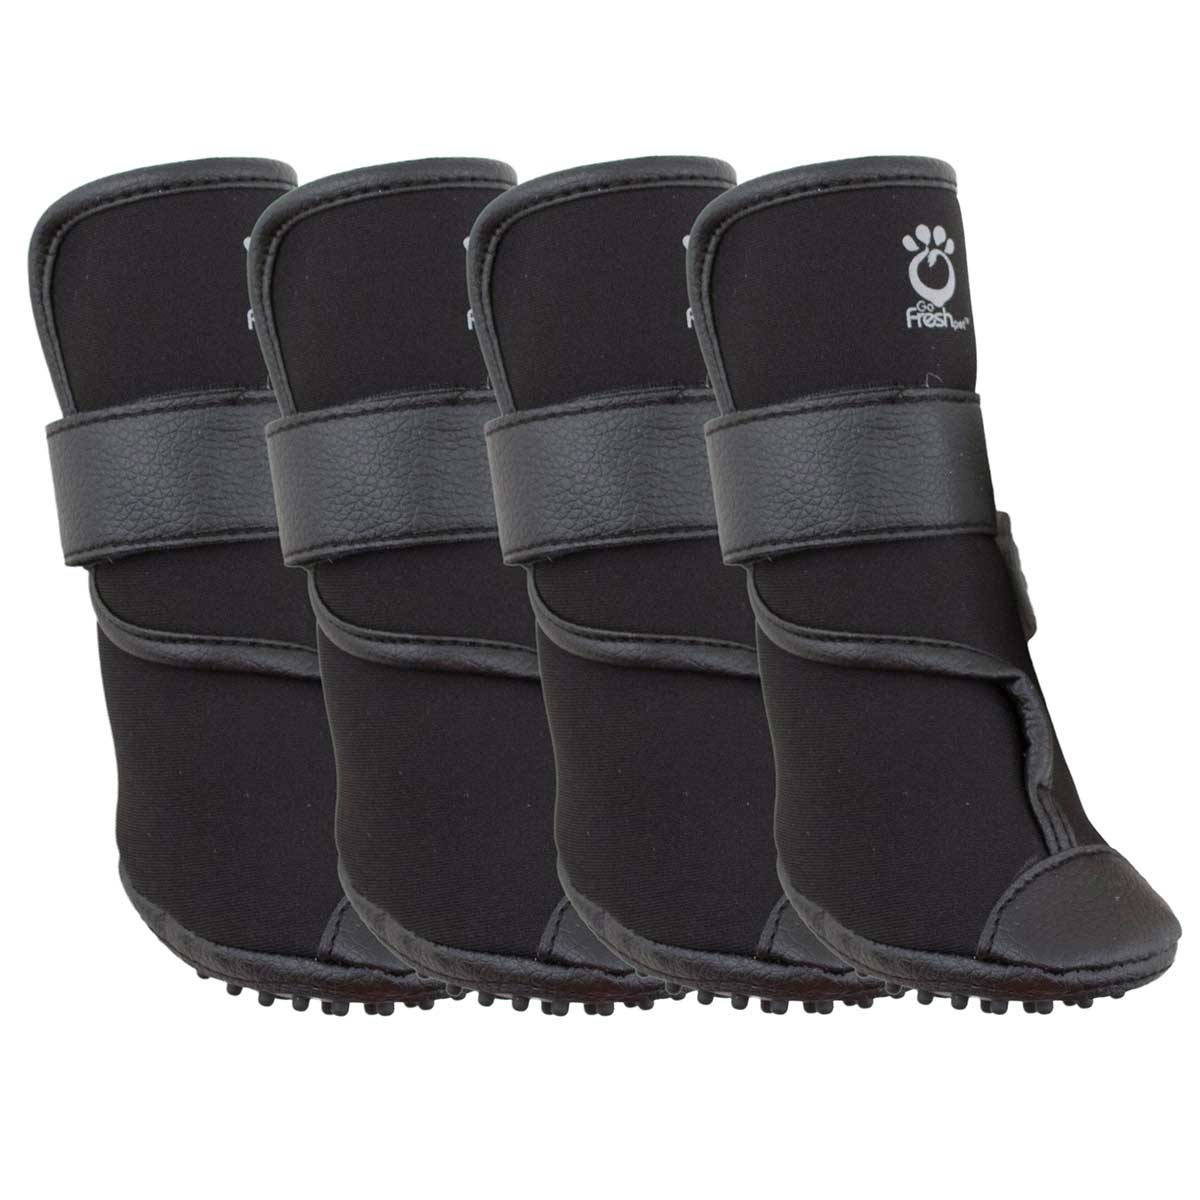 Booteez Heavy-Duty Black Dog Boots X-Large